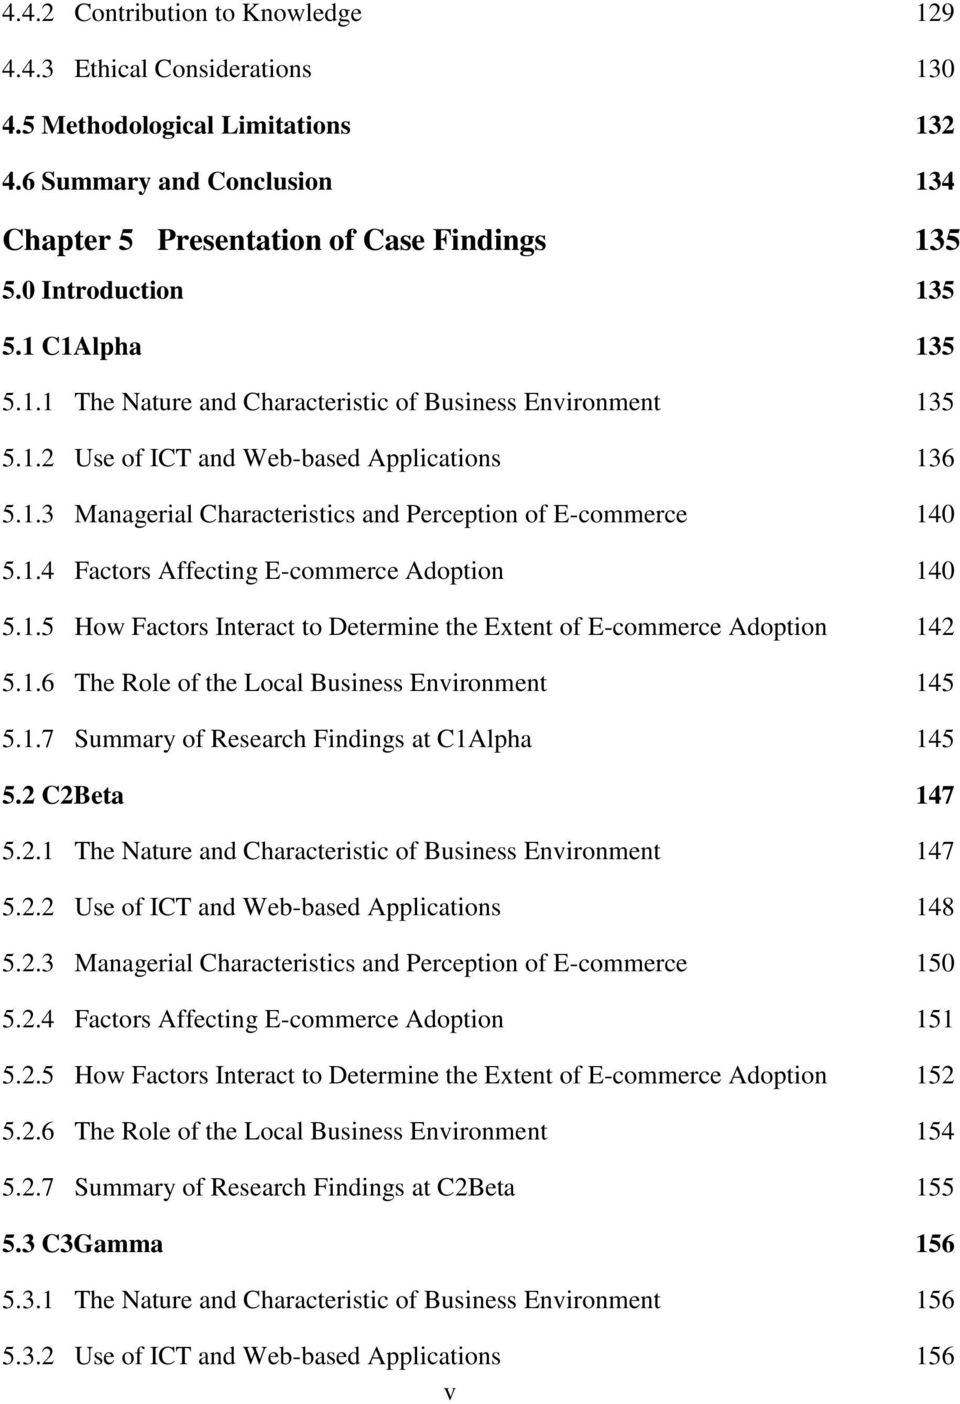 1.4 Factors Affecting E-commerce Adoption 140 5.1.5 How Factors Interact to Determine the Extent of E-commerce Adoption 142 5.1.6 The Role of the Local Business Environment 145 5.1.7 Summary of Research Findings at C1Alpha 145 5.